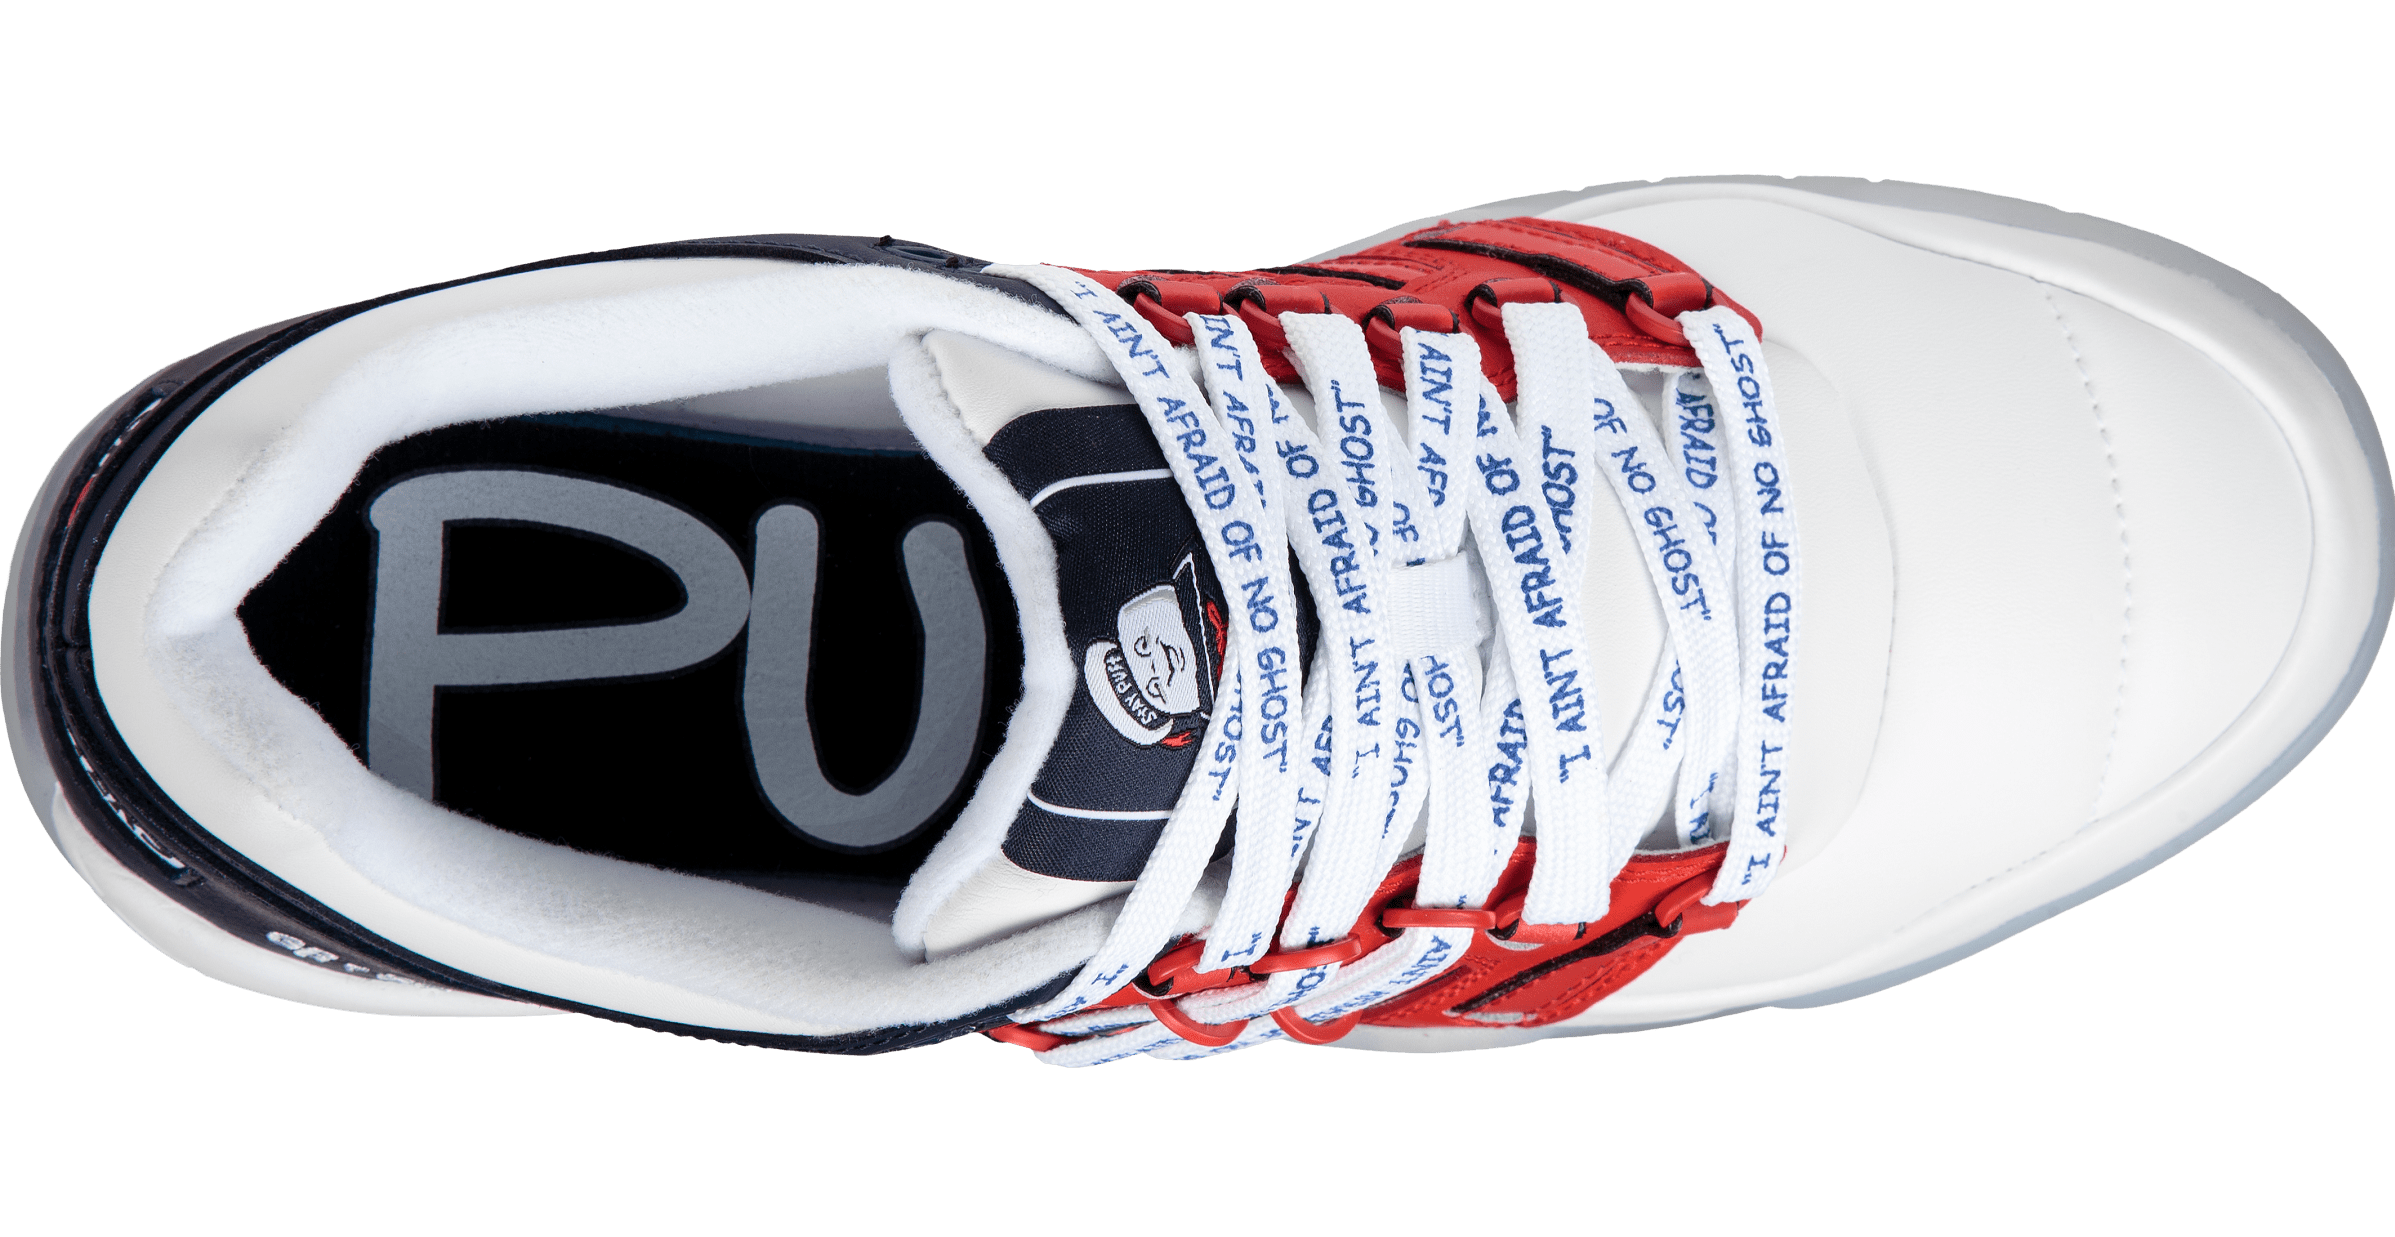 K-Swiss x Ghostbusters Si-18 International 'Stay Puft' 06620-104 (Top)